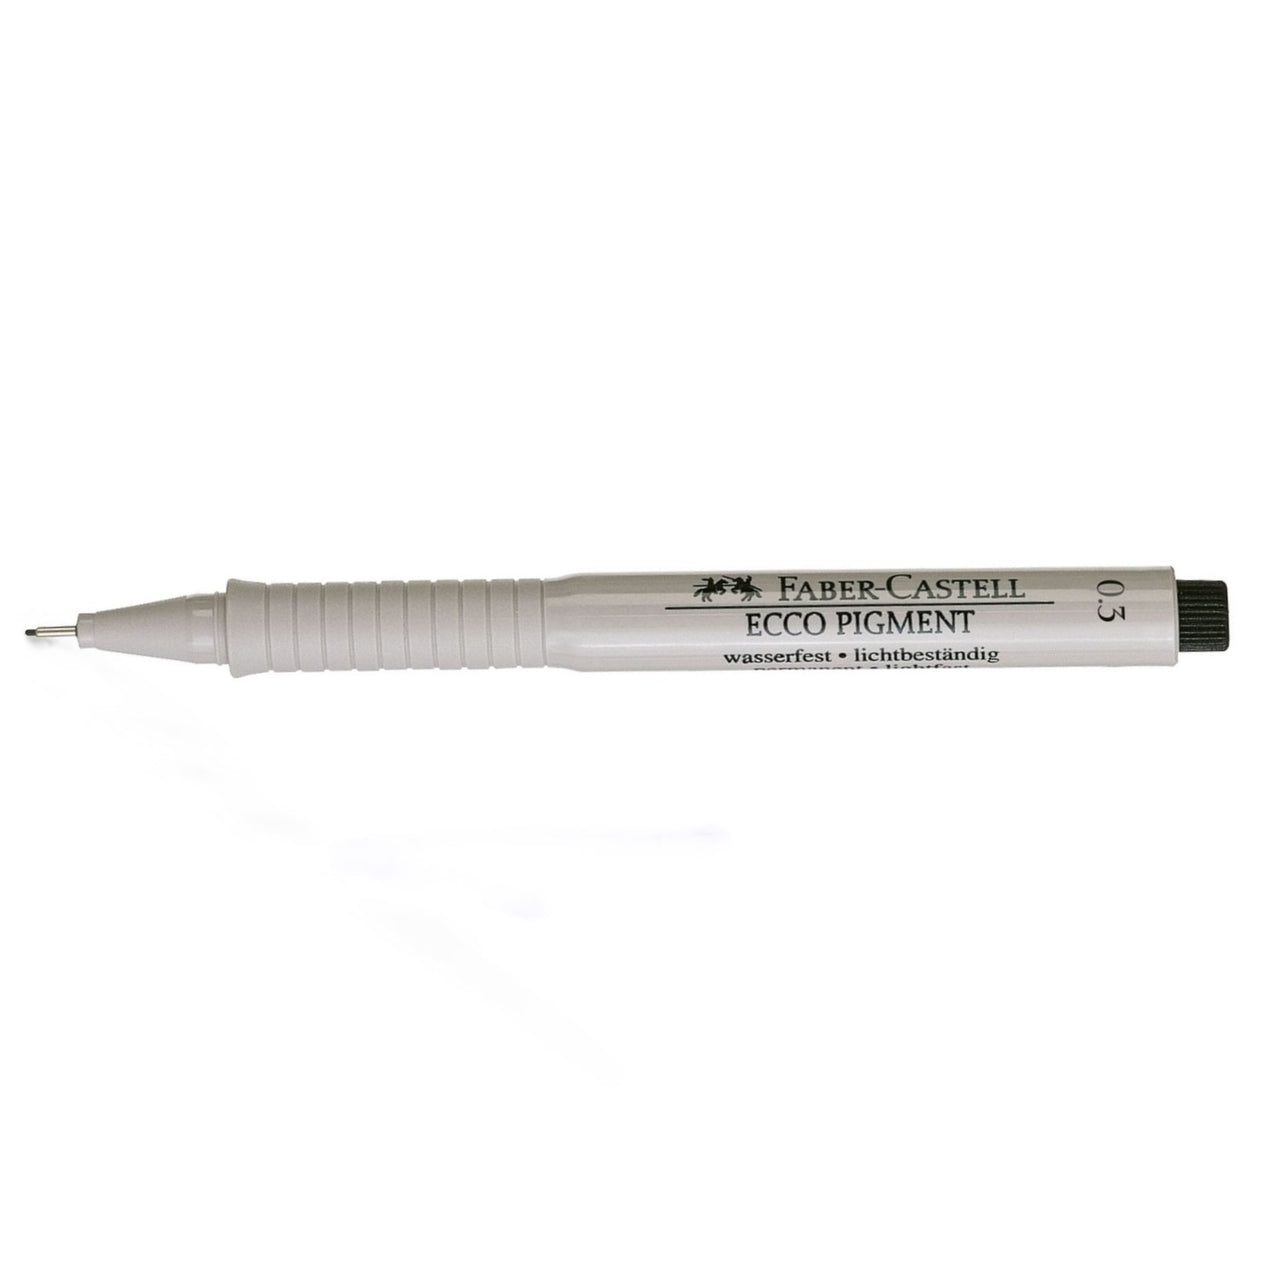 Faber Castell Ecco Pigment 0.3MM